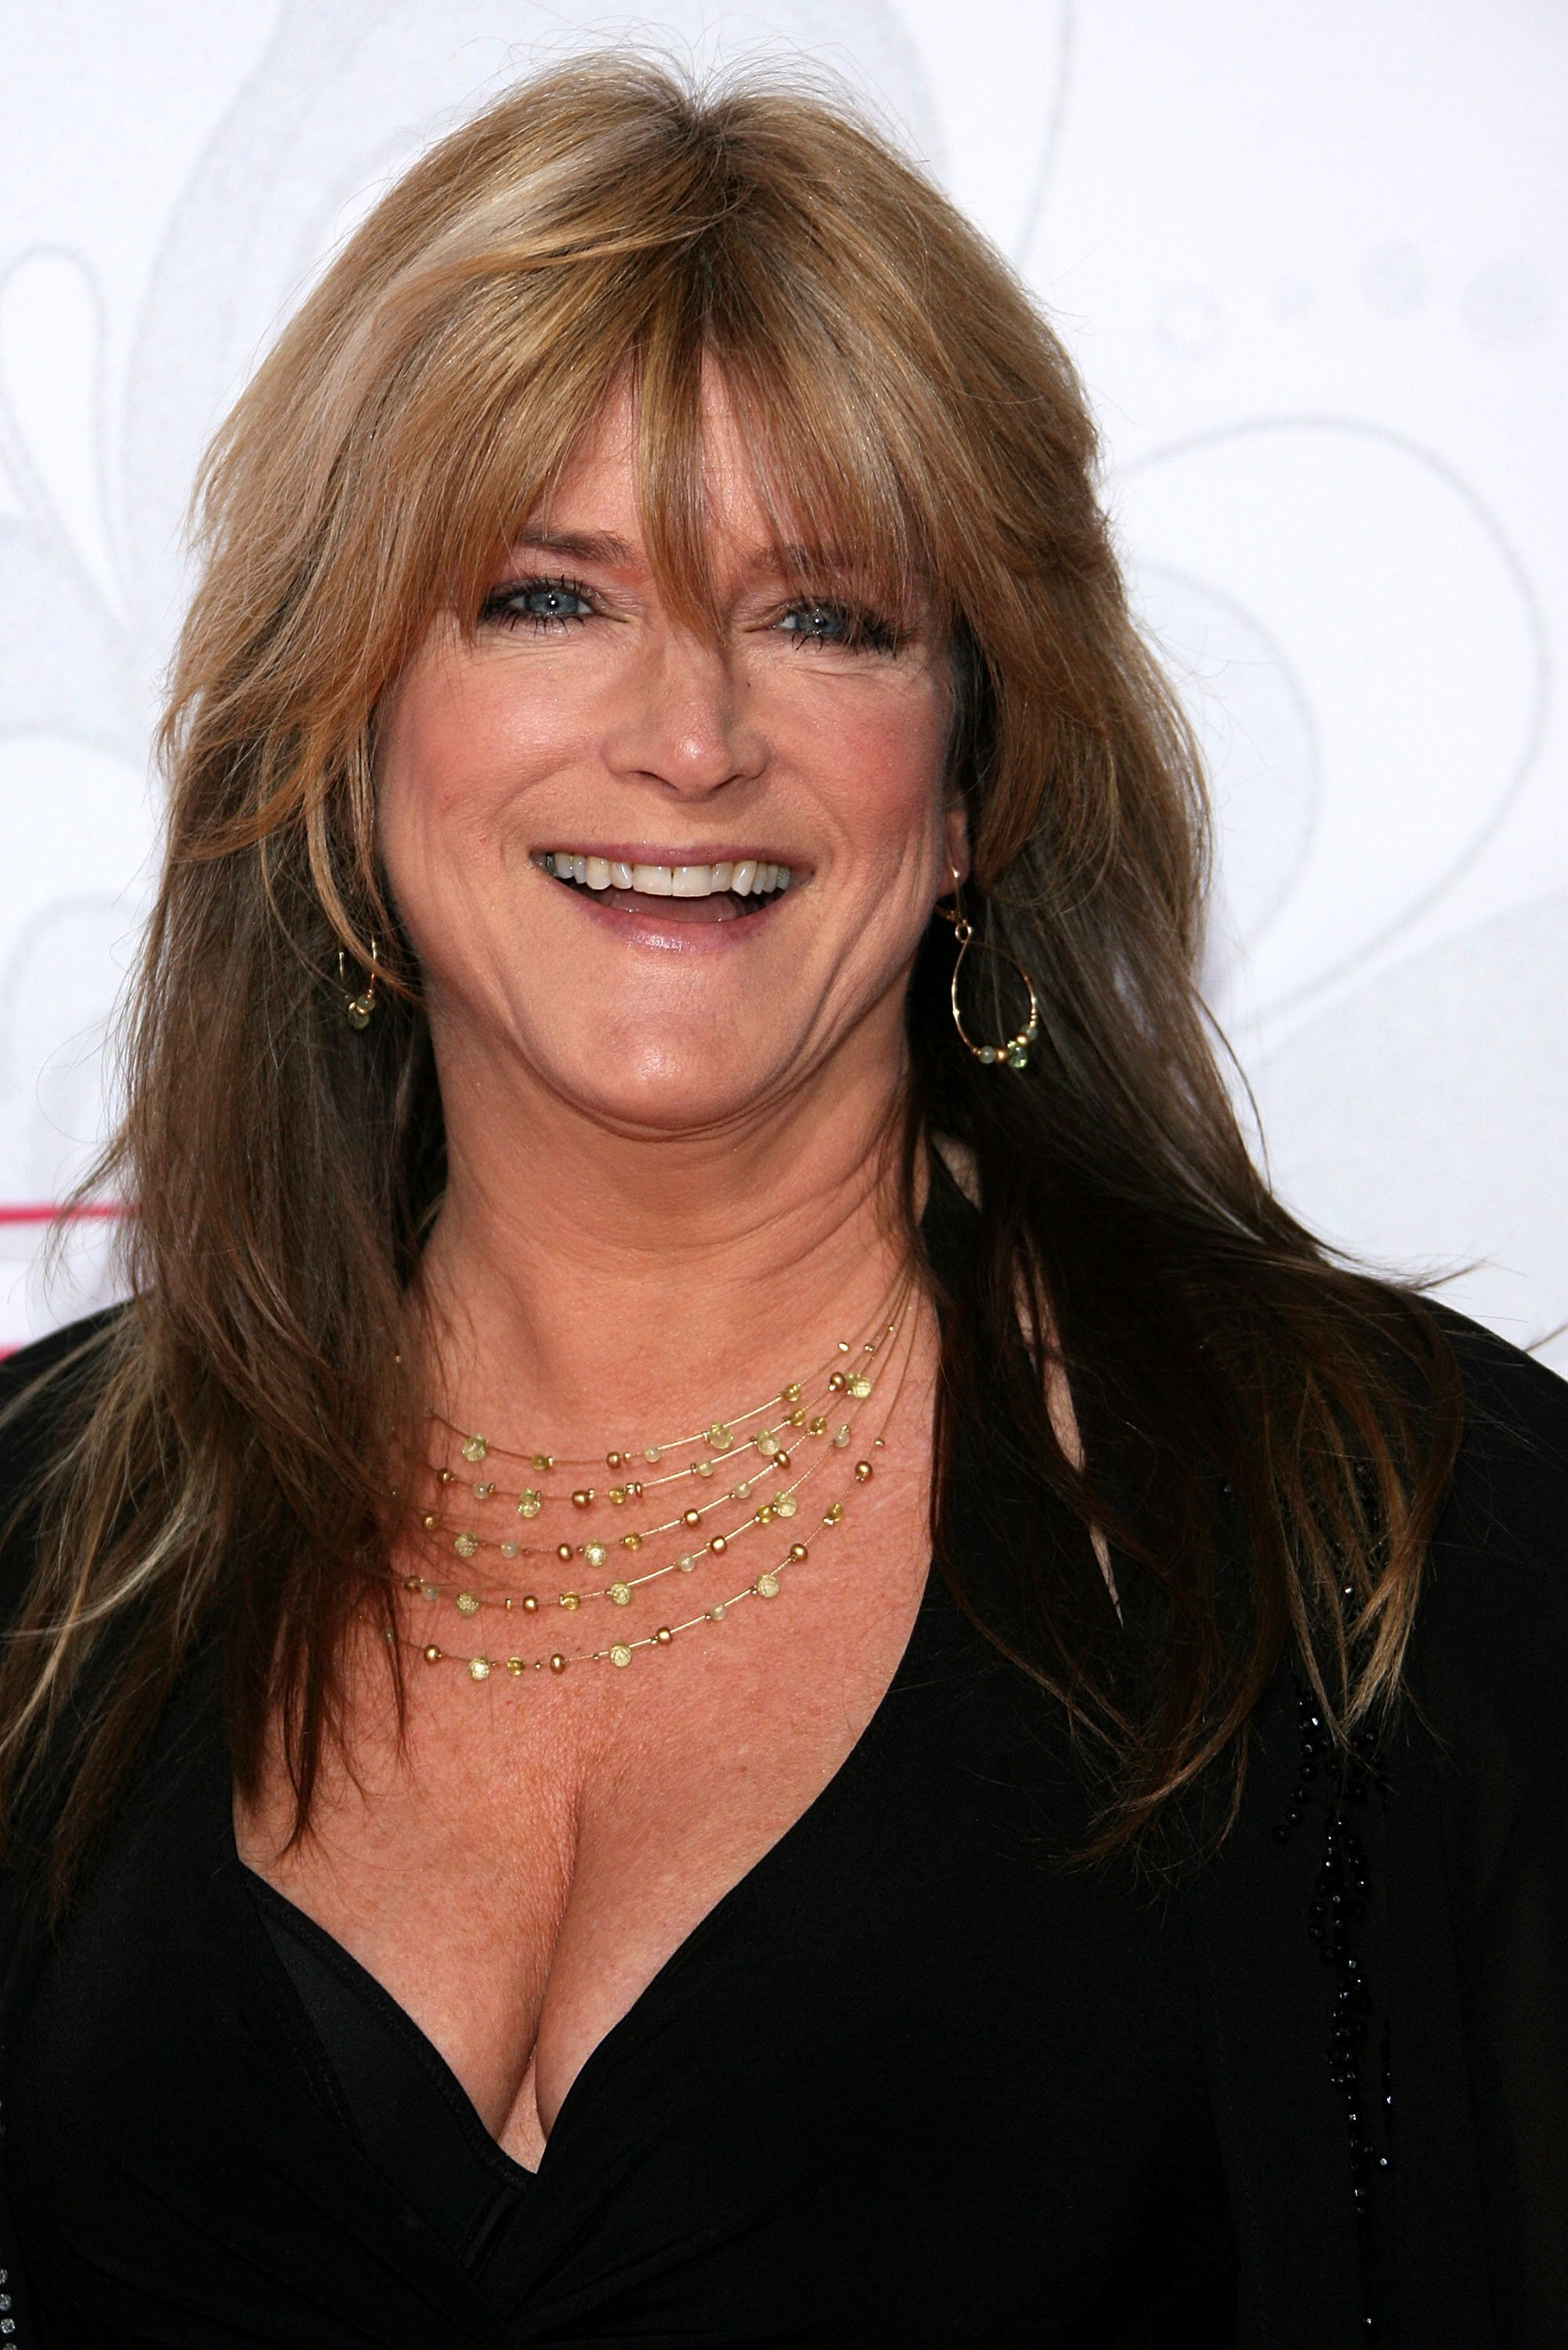 Susan Olsen at the 5th Annual TV Land Awards  on April 14, 2007 in Santa Monica, California. | Source: Getty Images)